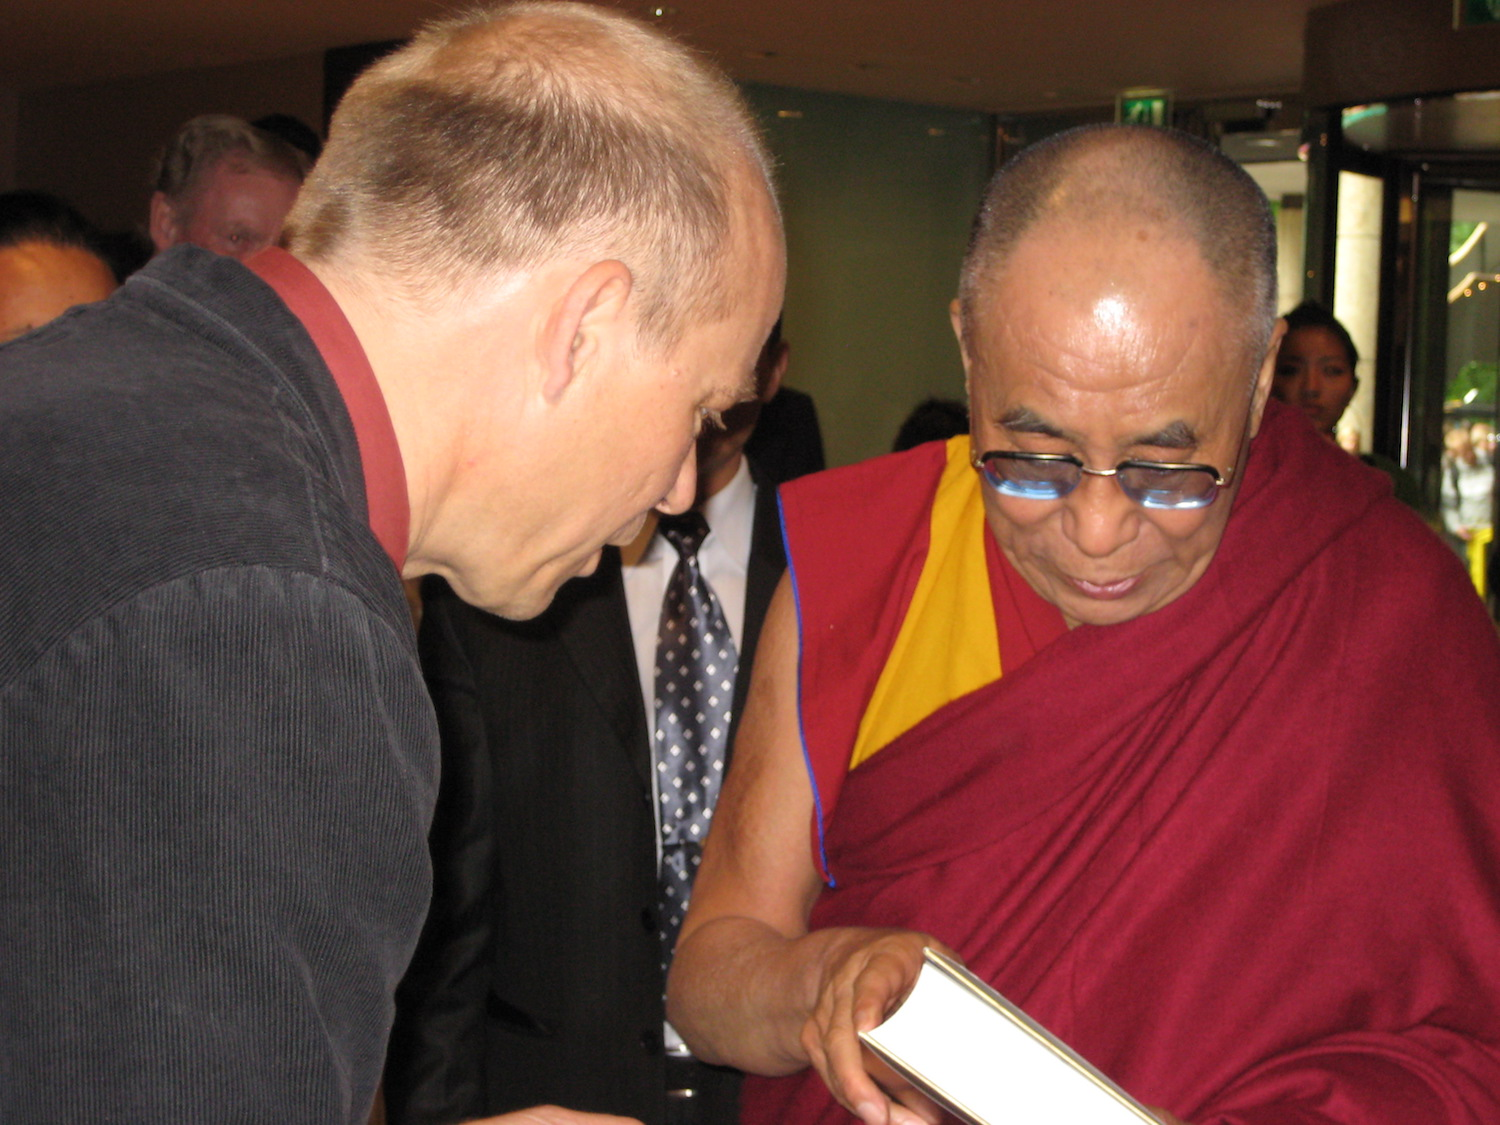 The Dalai Lama receives with a lot of interest his copy of  Dalai Lama: Sage of This Time  from Bert van Baar during his visit to Amsterdam in 2009.